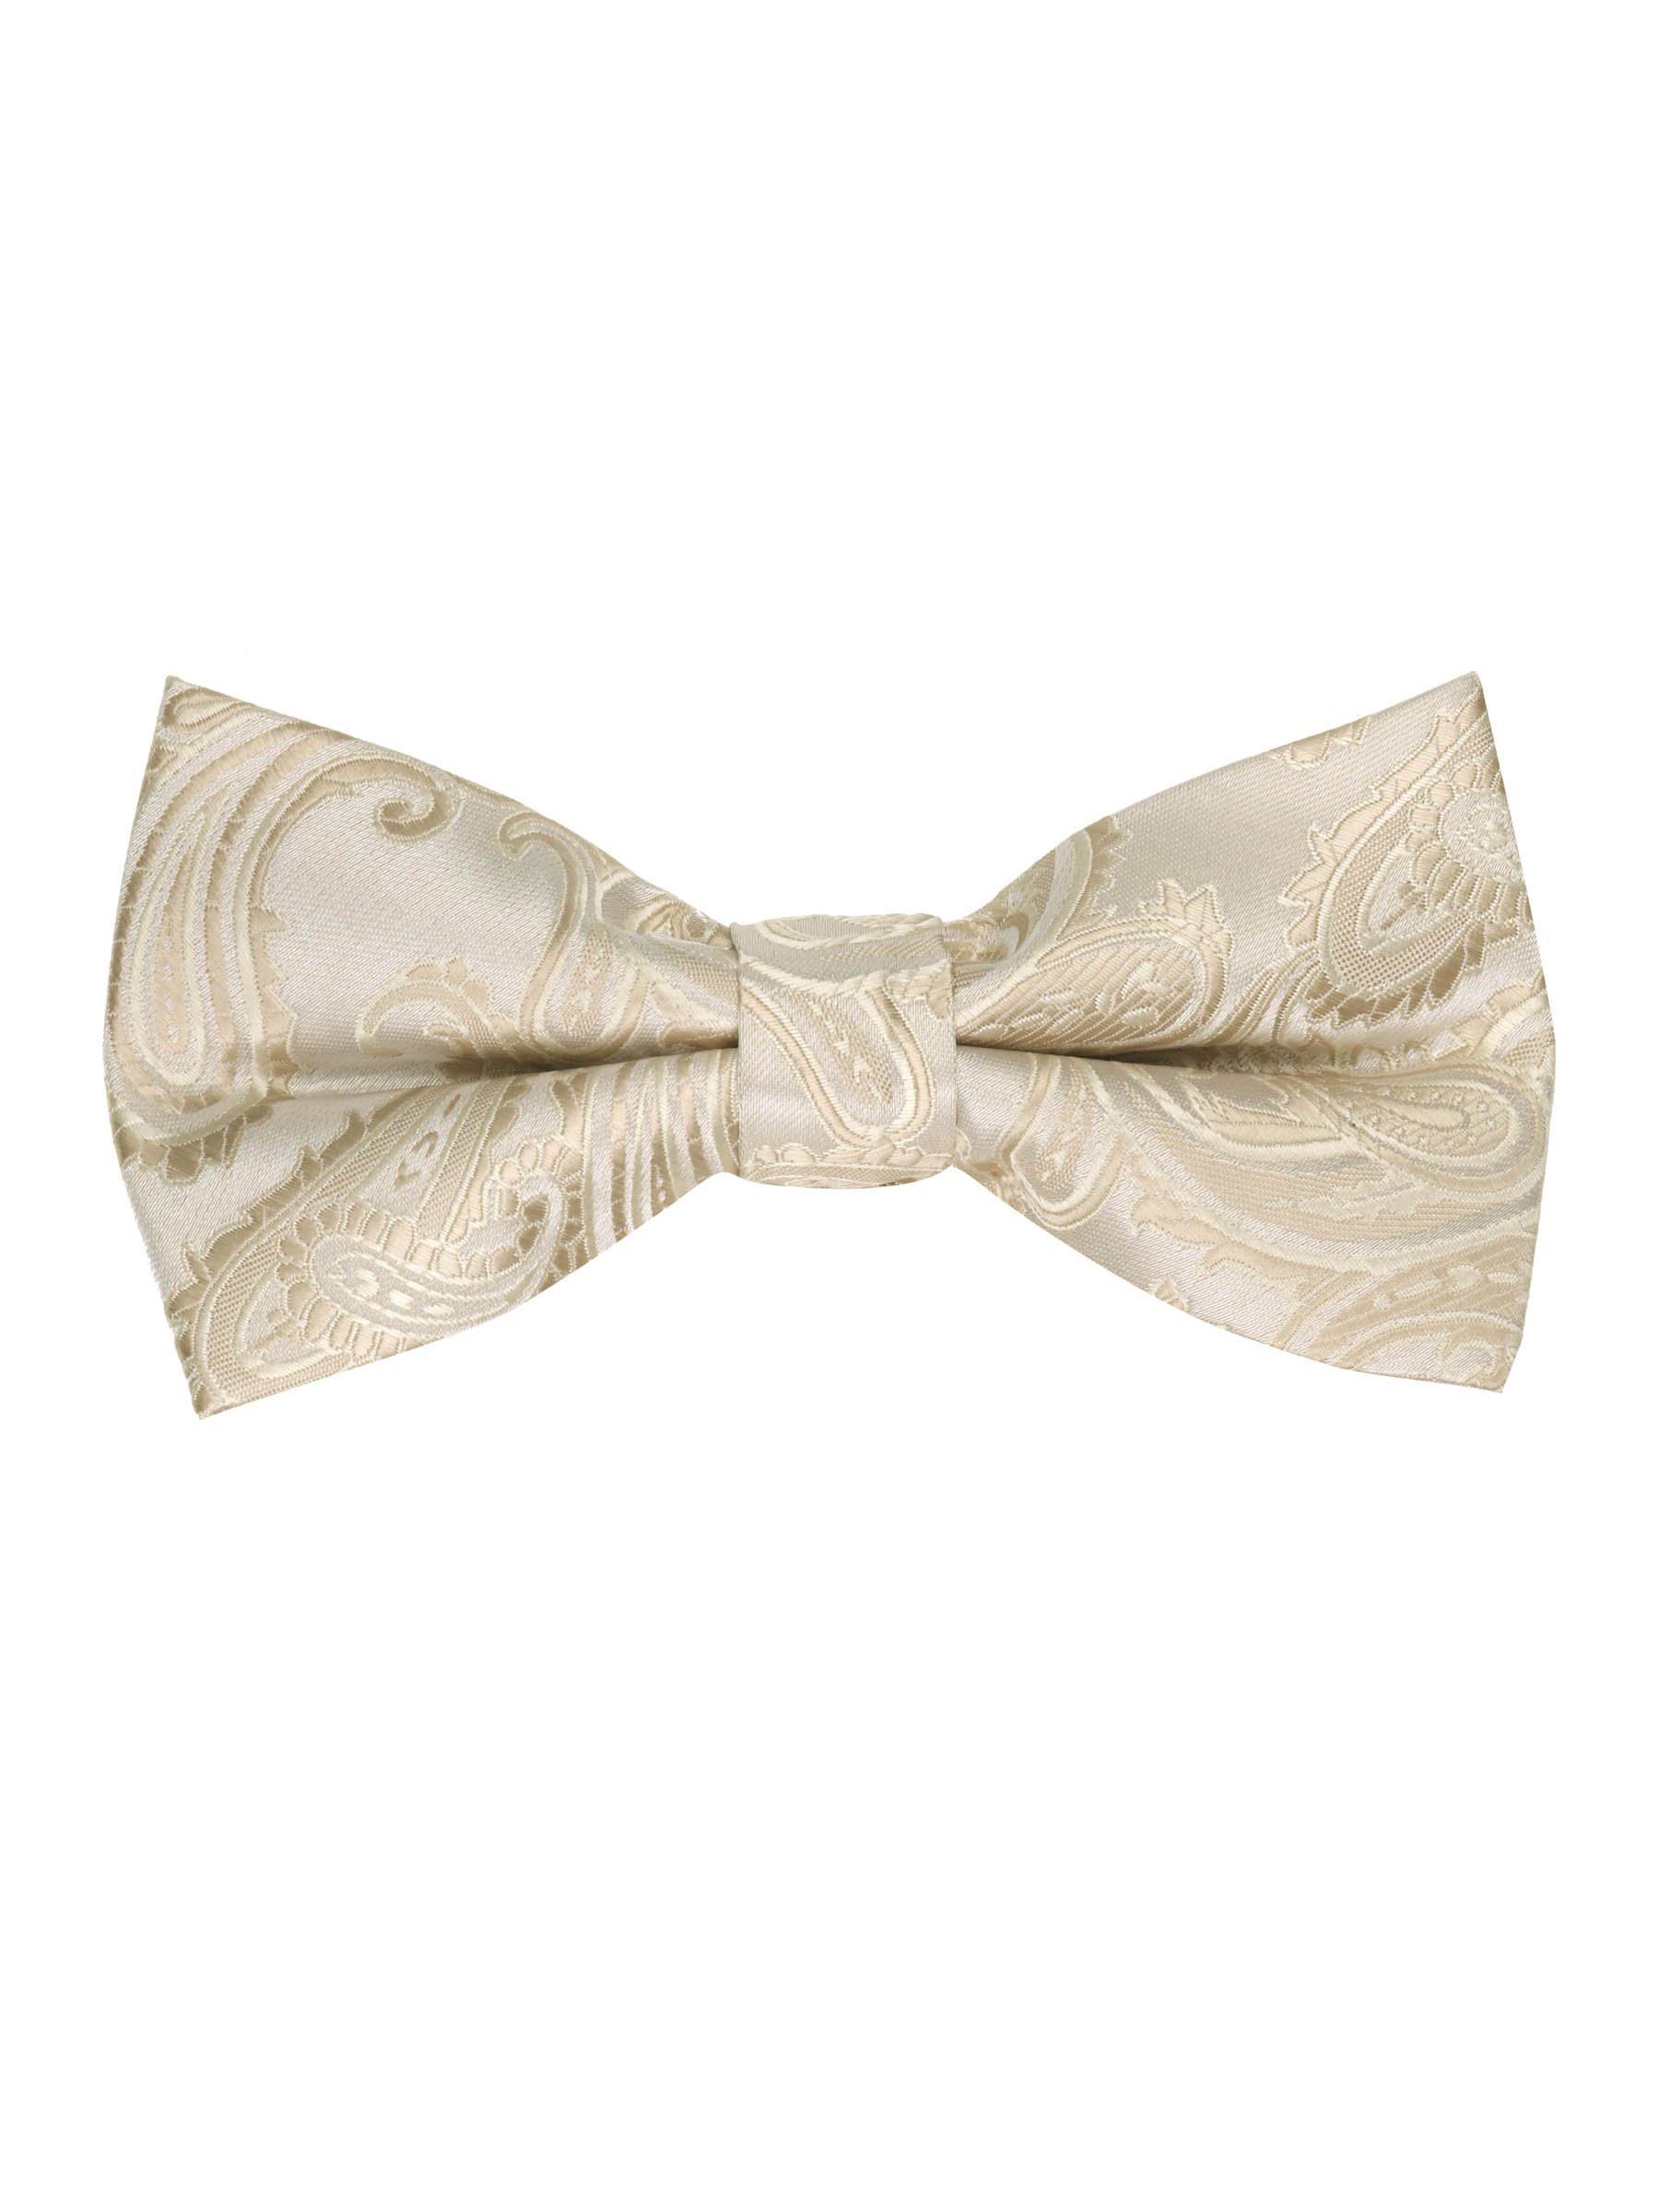 Men's Paisley Pre-Tied Bow Tie - Champagne, One Size